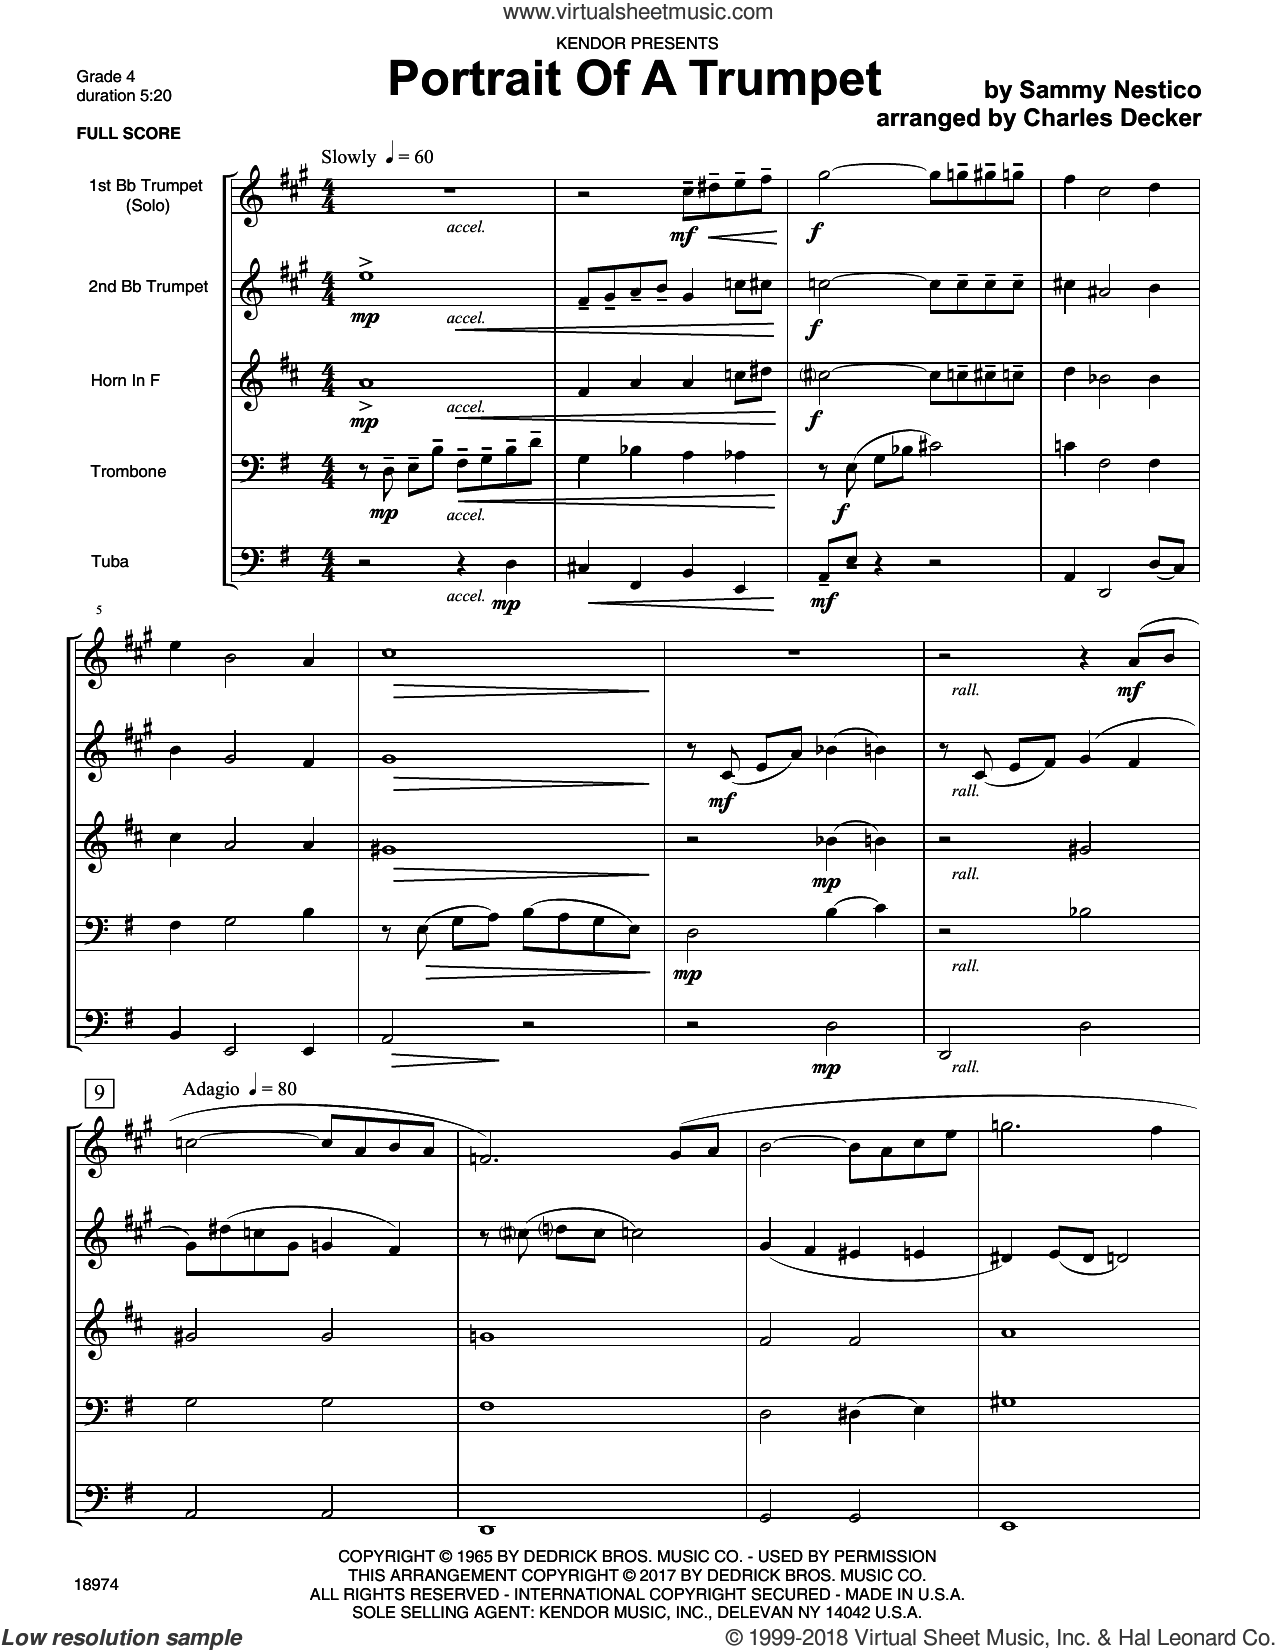 Portrait Of A Trumpet (COMPLETE) sheet music for brass quintet by Sammy Nestico, Charles Decker and Denis DiBlasio, intermediate. Score Image Preview.